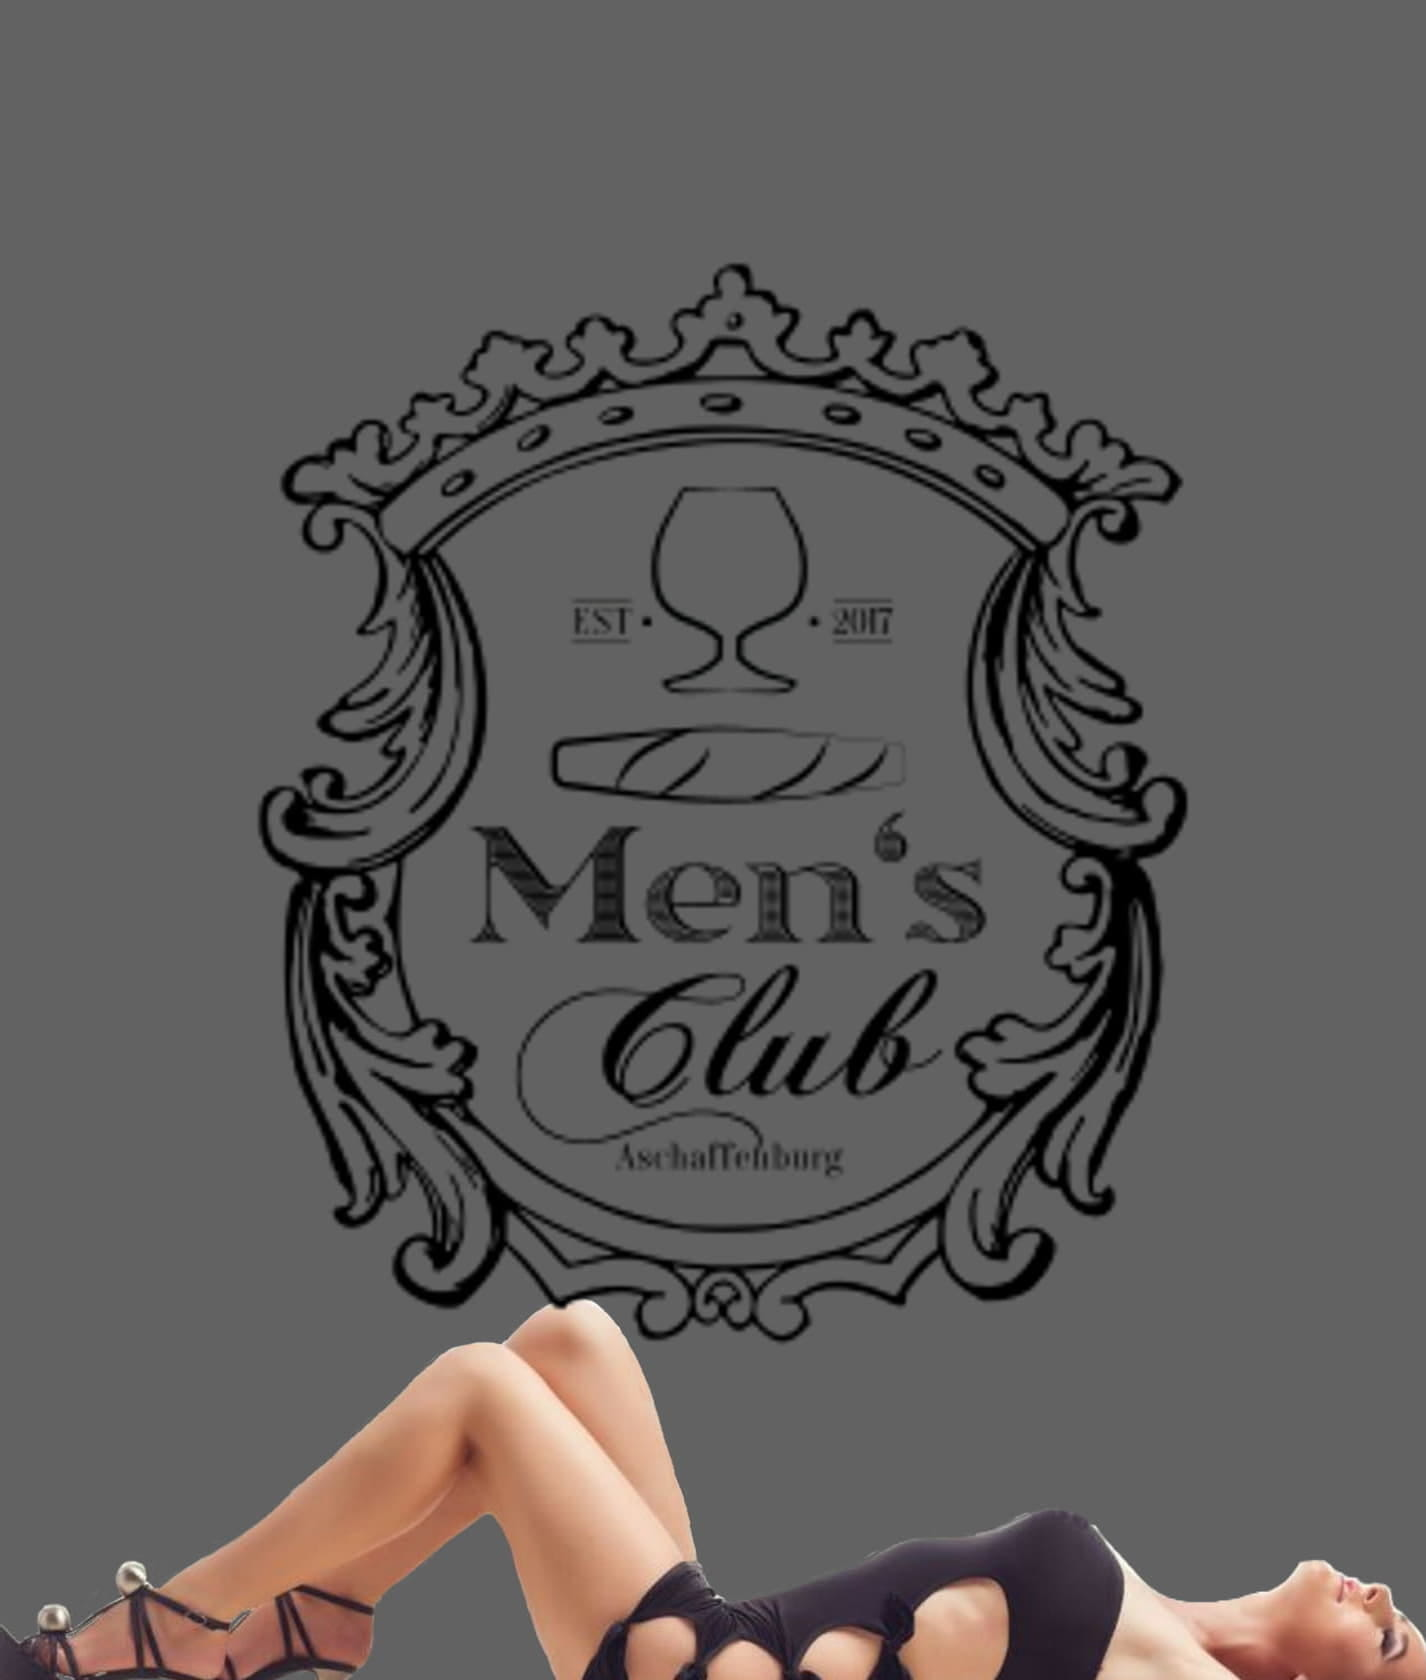 Mans Club (Brothel) Aschaffenburg Bavaria 781750 1426px 1680px 194057